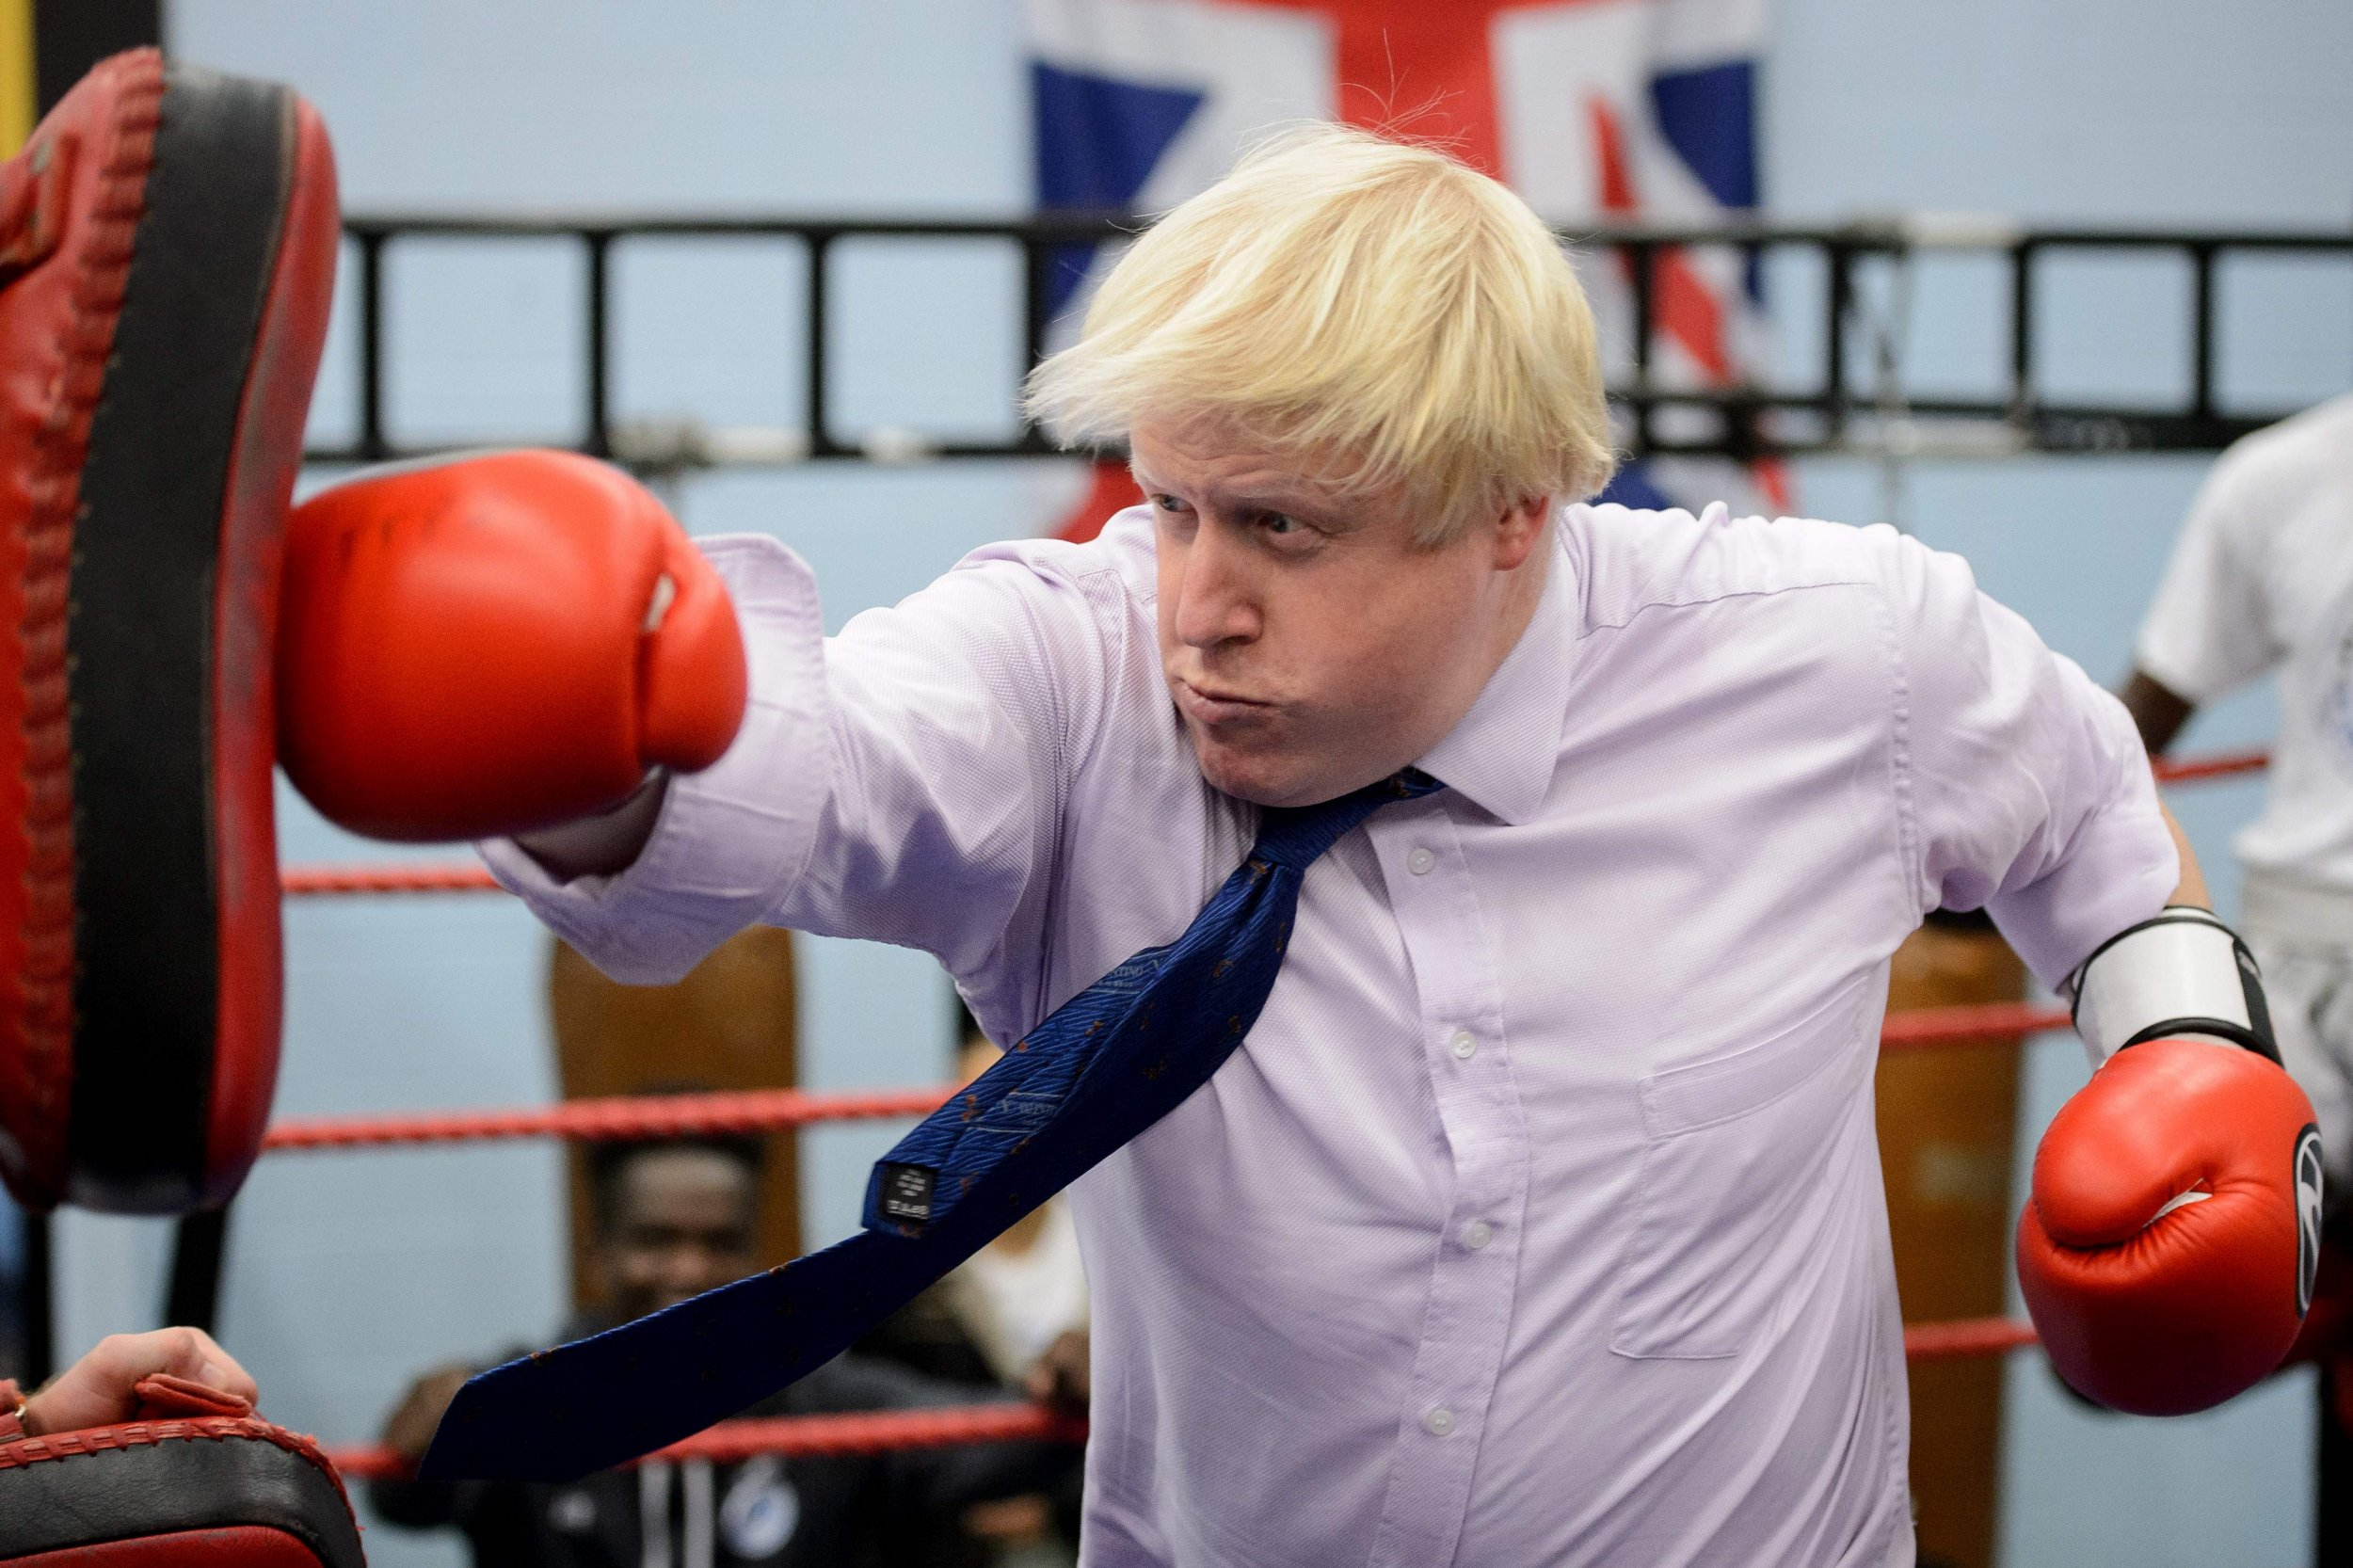 (FILES) This file photo taken on October 28, 2014 shows Mayor of London Boris Johnson boxing with a trainer during his visit to Fight for Peace Academy in North Woolwich, London, on October 28, 2014. London Mayor Boris Johnson has long been both ally and nemesis to Britain's Prime Minister David Cameron but could deal his old friend the heaviest blow yet on February 21, 2016 if he backs the campaign to leave the EU. / AFP / LEON NEALLEON NEAL/AFP/Getty Images